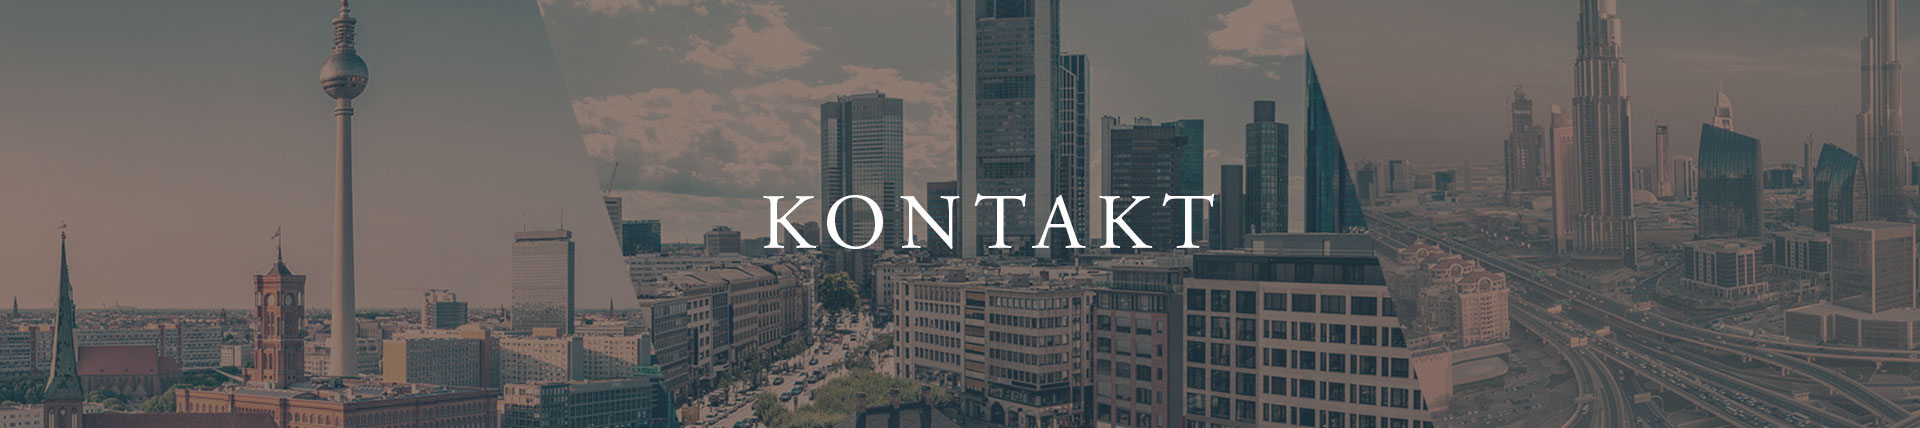 Website Header Kontakt